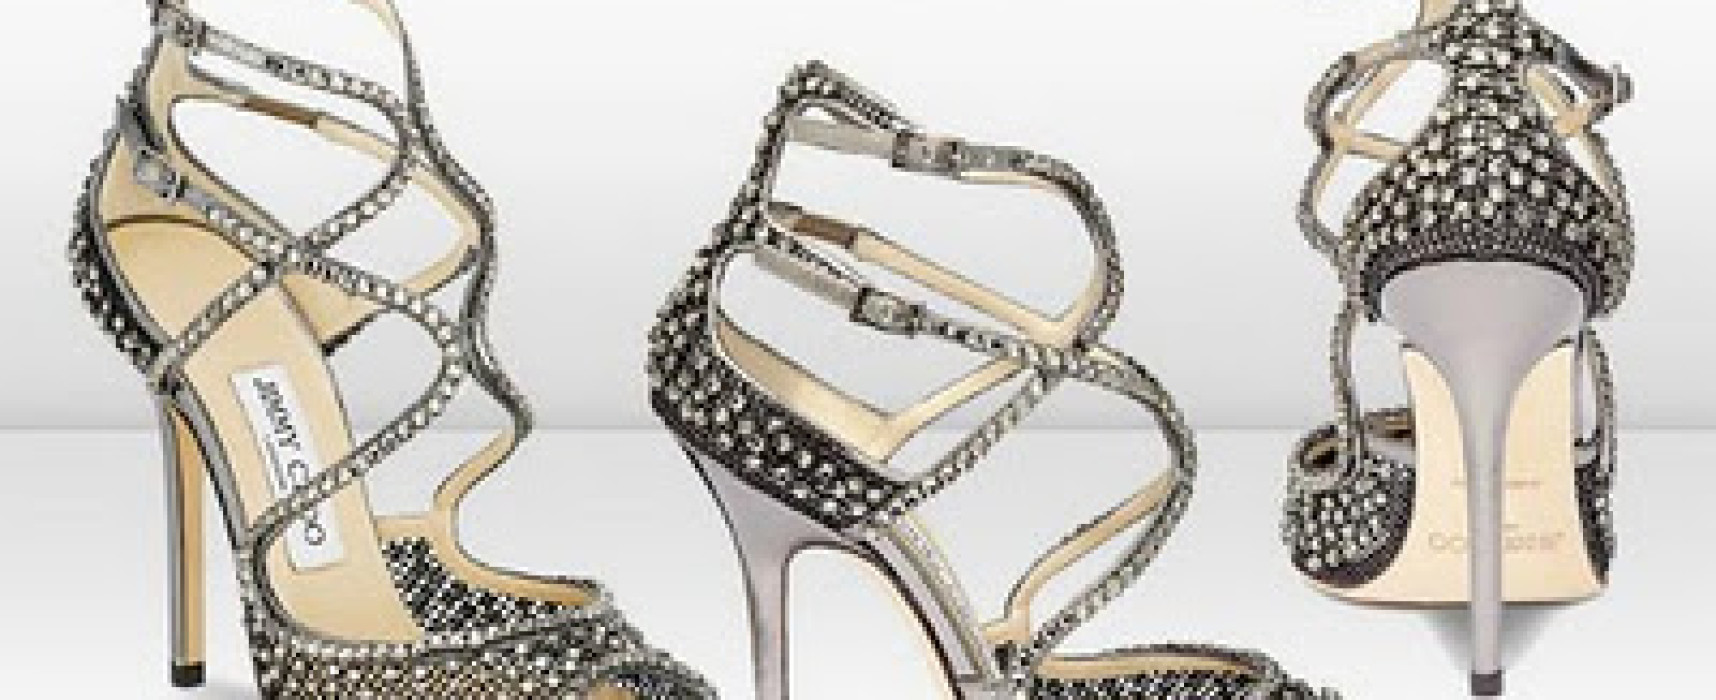 Luxury shoe brands for women – Following the fashion trends